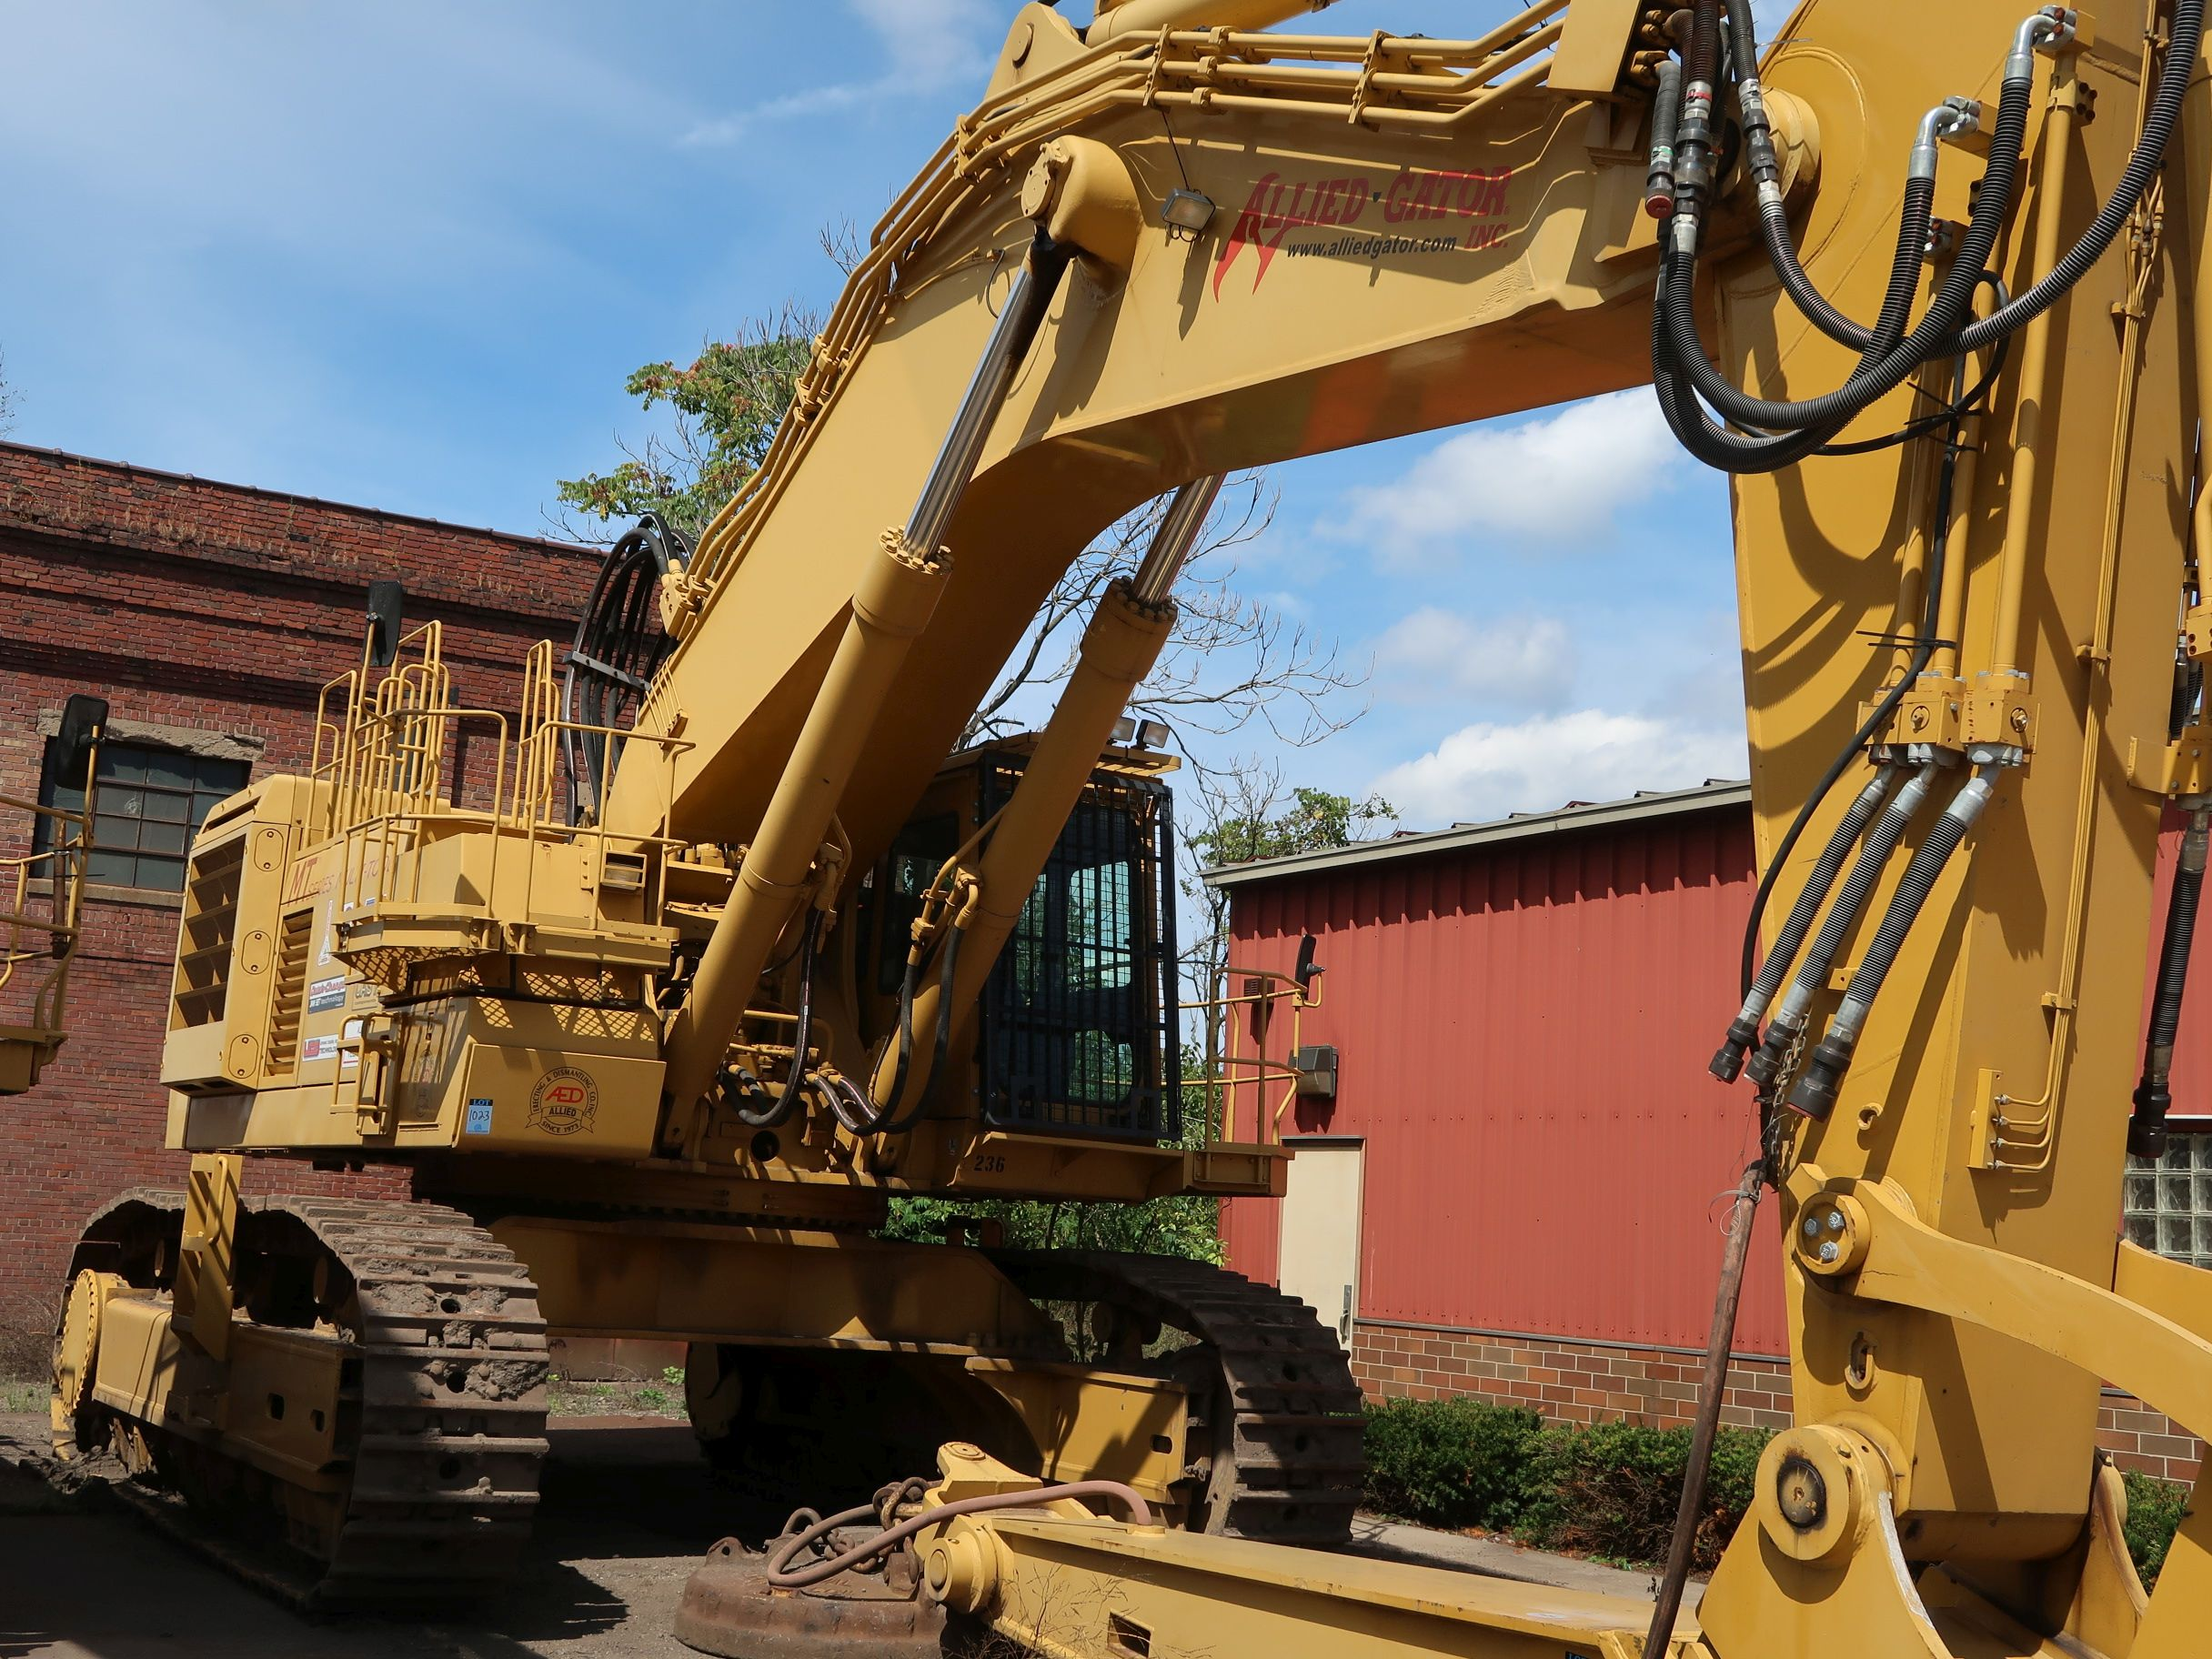 Lot 1023 - 2000 KOMATSU MODEL PC1100-6H HYDRAULIC EXCAVATOR; S/N H10028 (YEAR 2000 - 15,042 HOURS), GENERATOR